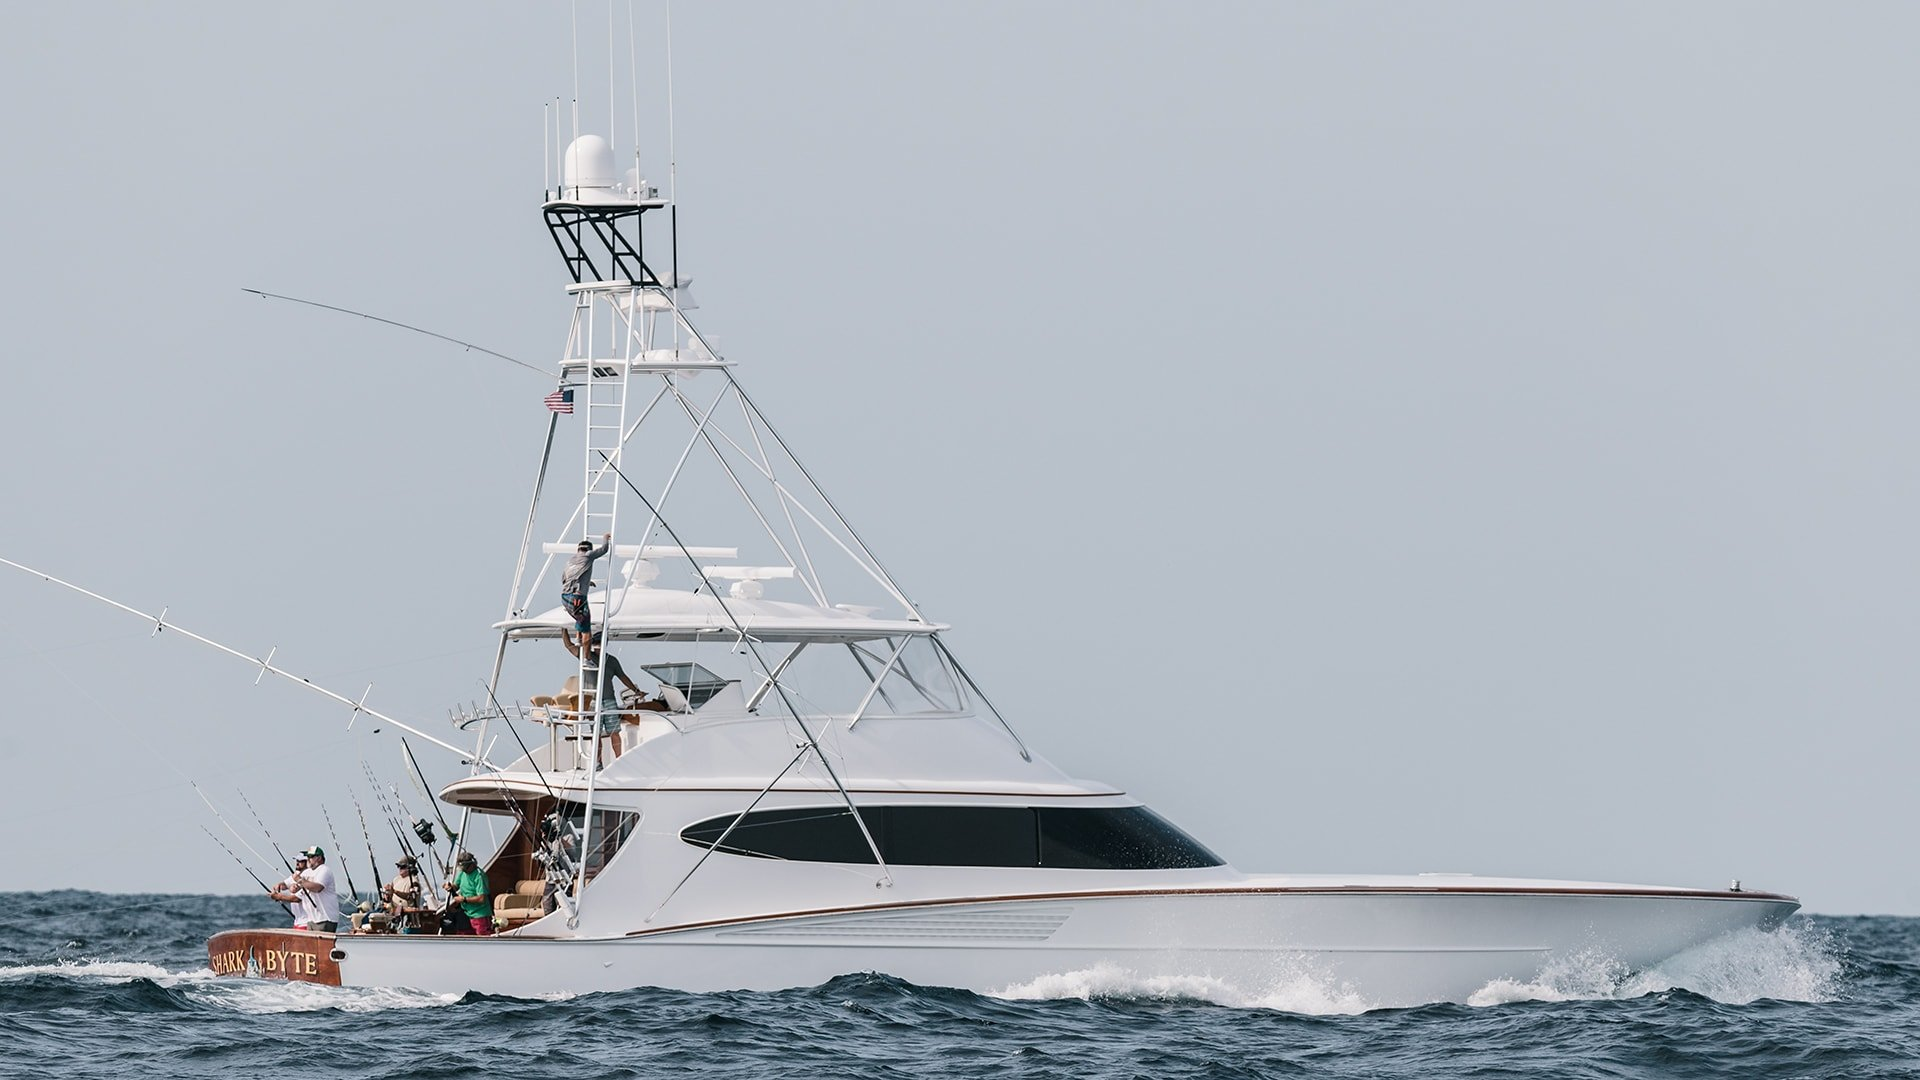 Bayliss Sportfishing Boat Shark Byte